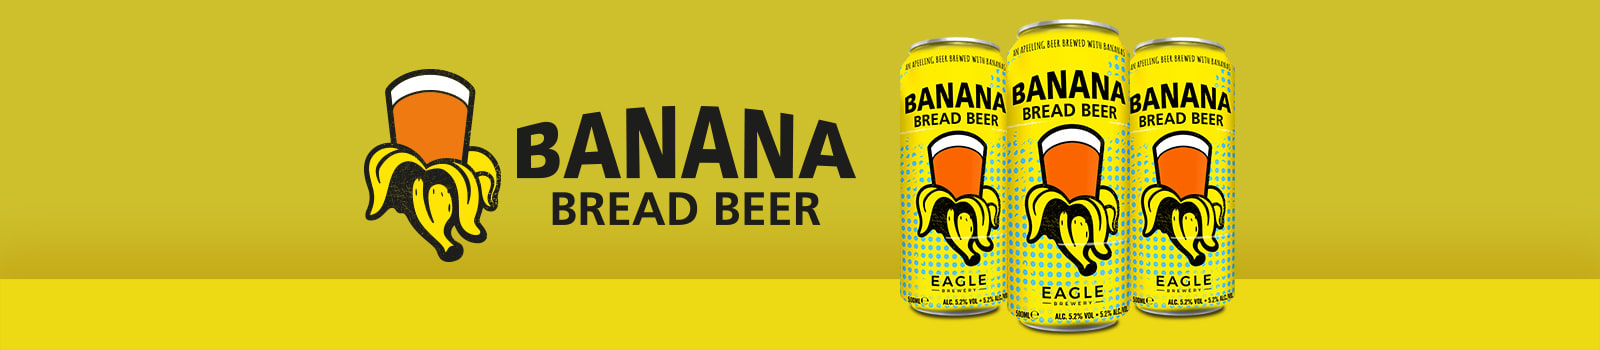 Banana Bread Beer, Marston's, Trajectory Beverage Partners